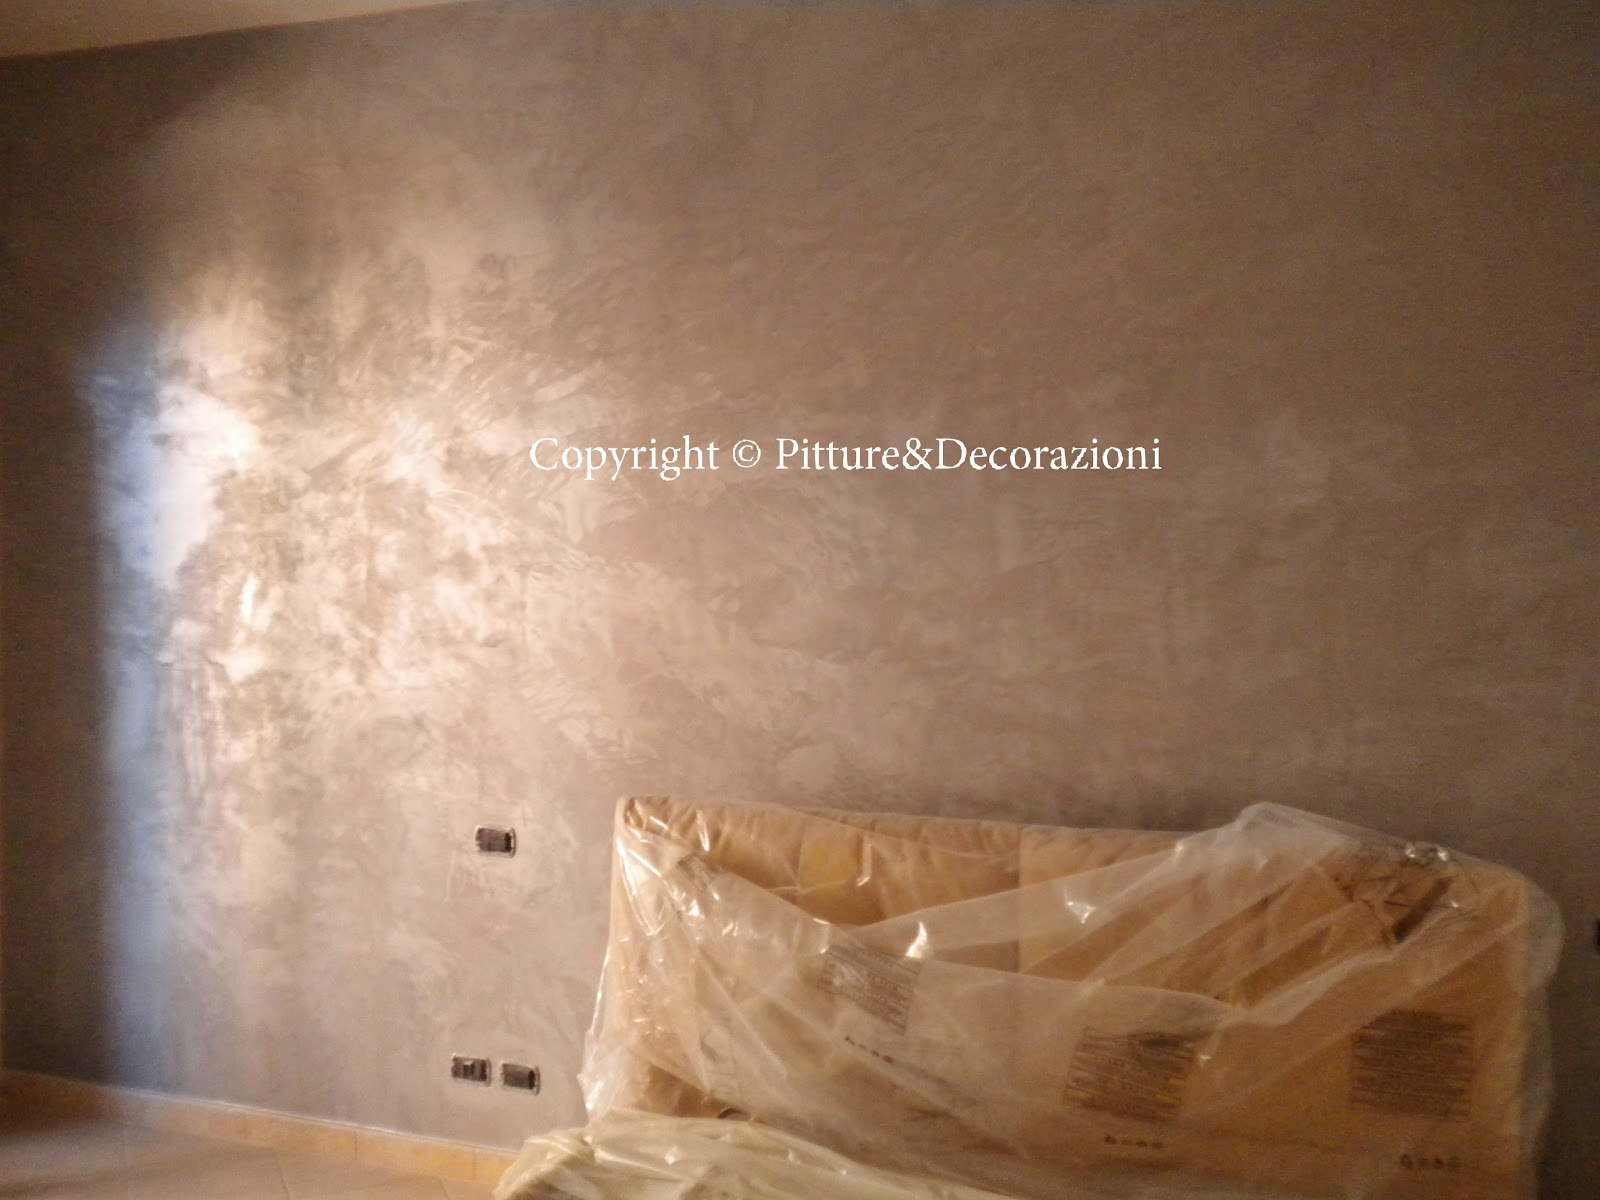 Leroy Merlin Pitture Murali Decorative : Prezzi pittura per interni. cheap con smalti e vernici spray per con